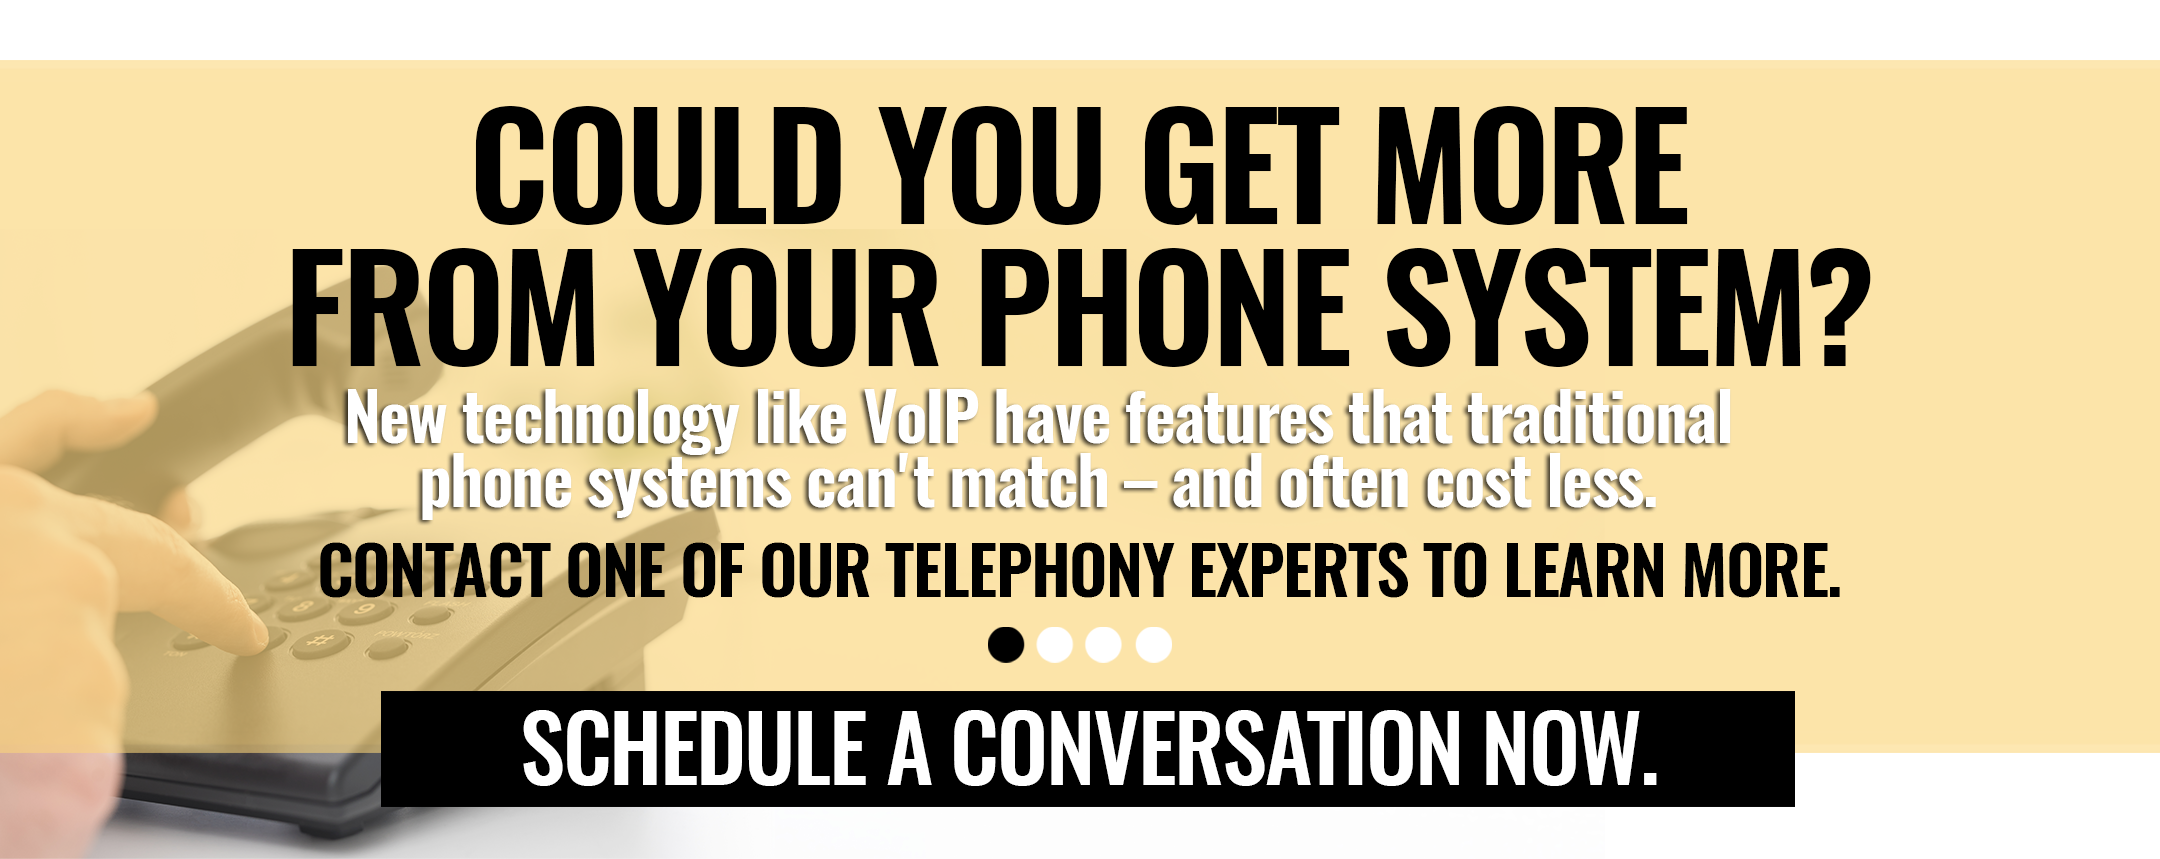 Could you get more form your phone system? Chat with our Telephony experts to find out. Click here to schedule a conversation now.